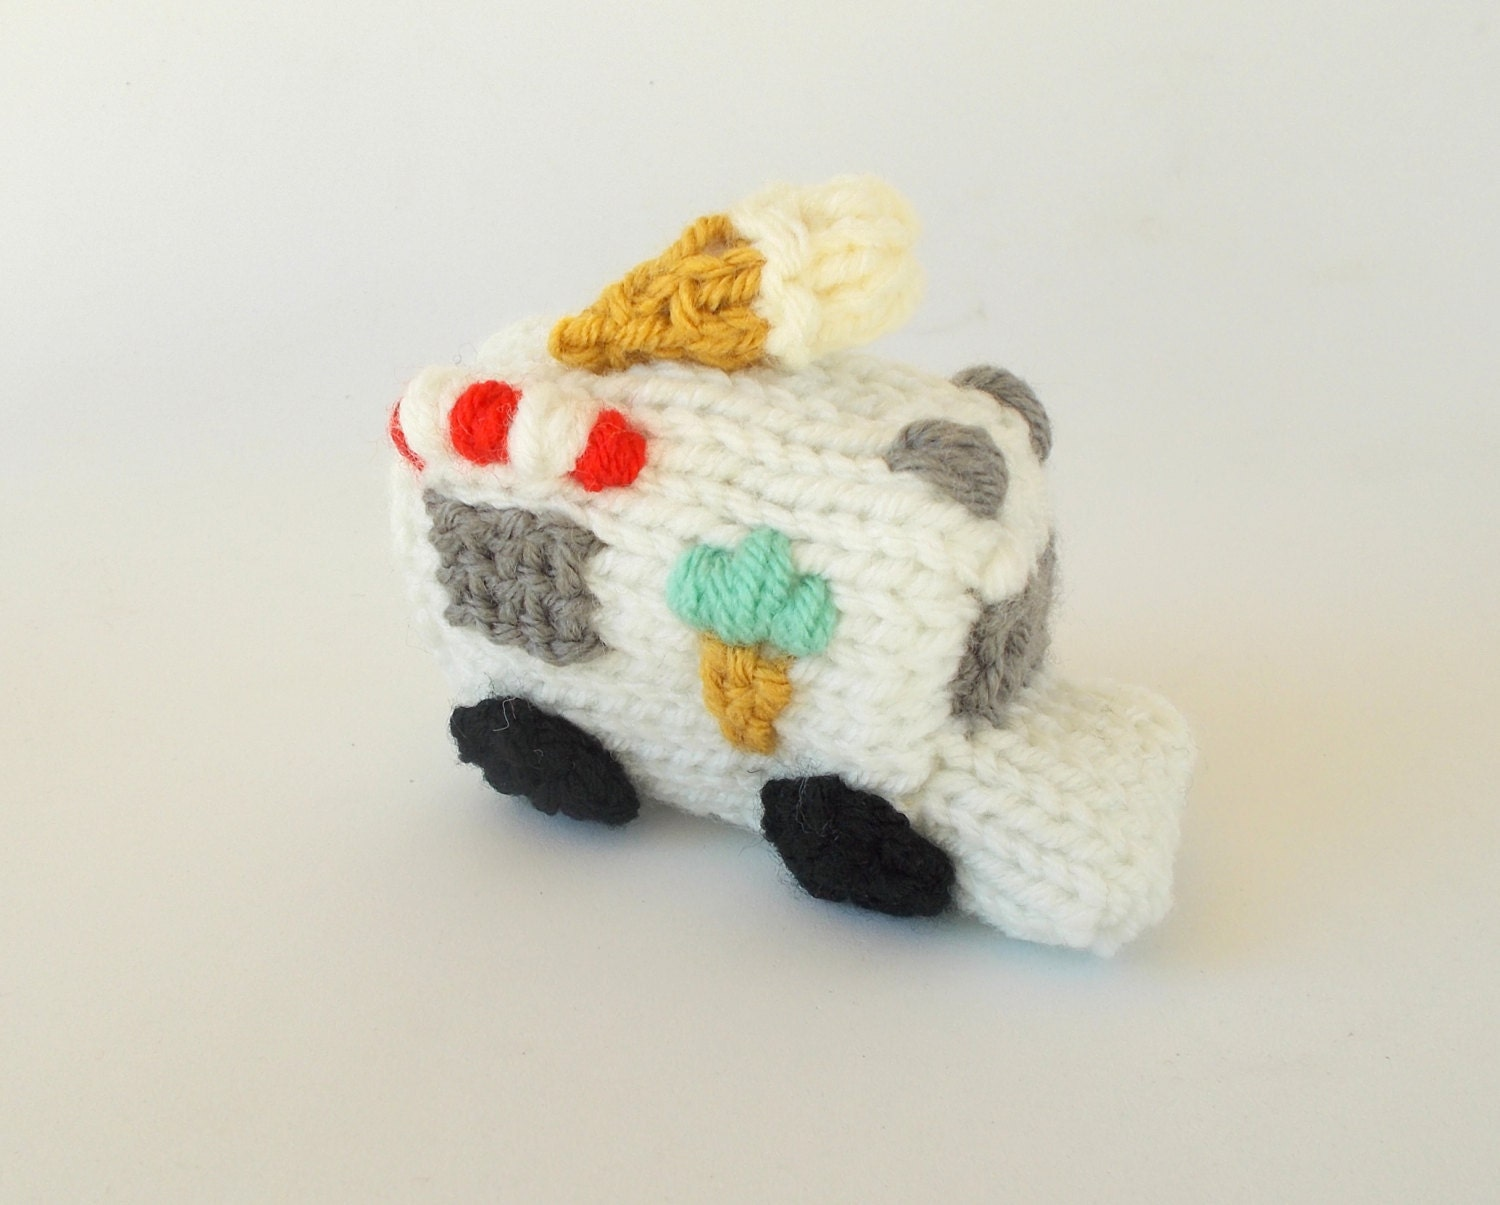 Knitting Patterns Mini Toys : Miniature Ice Cream Truck Knitted Soft Toy Model by ...